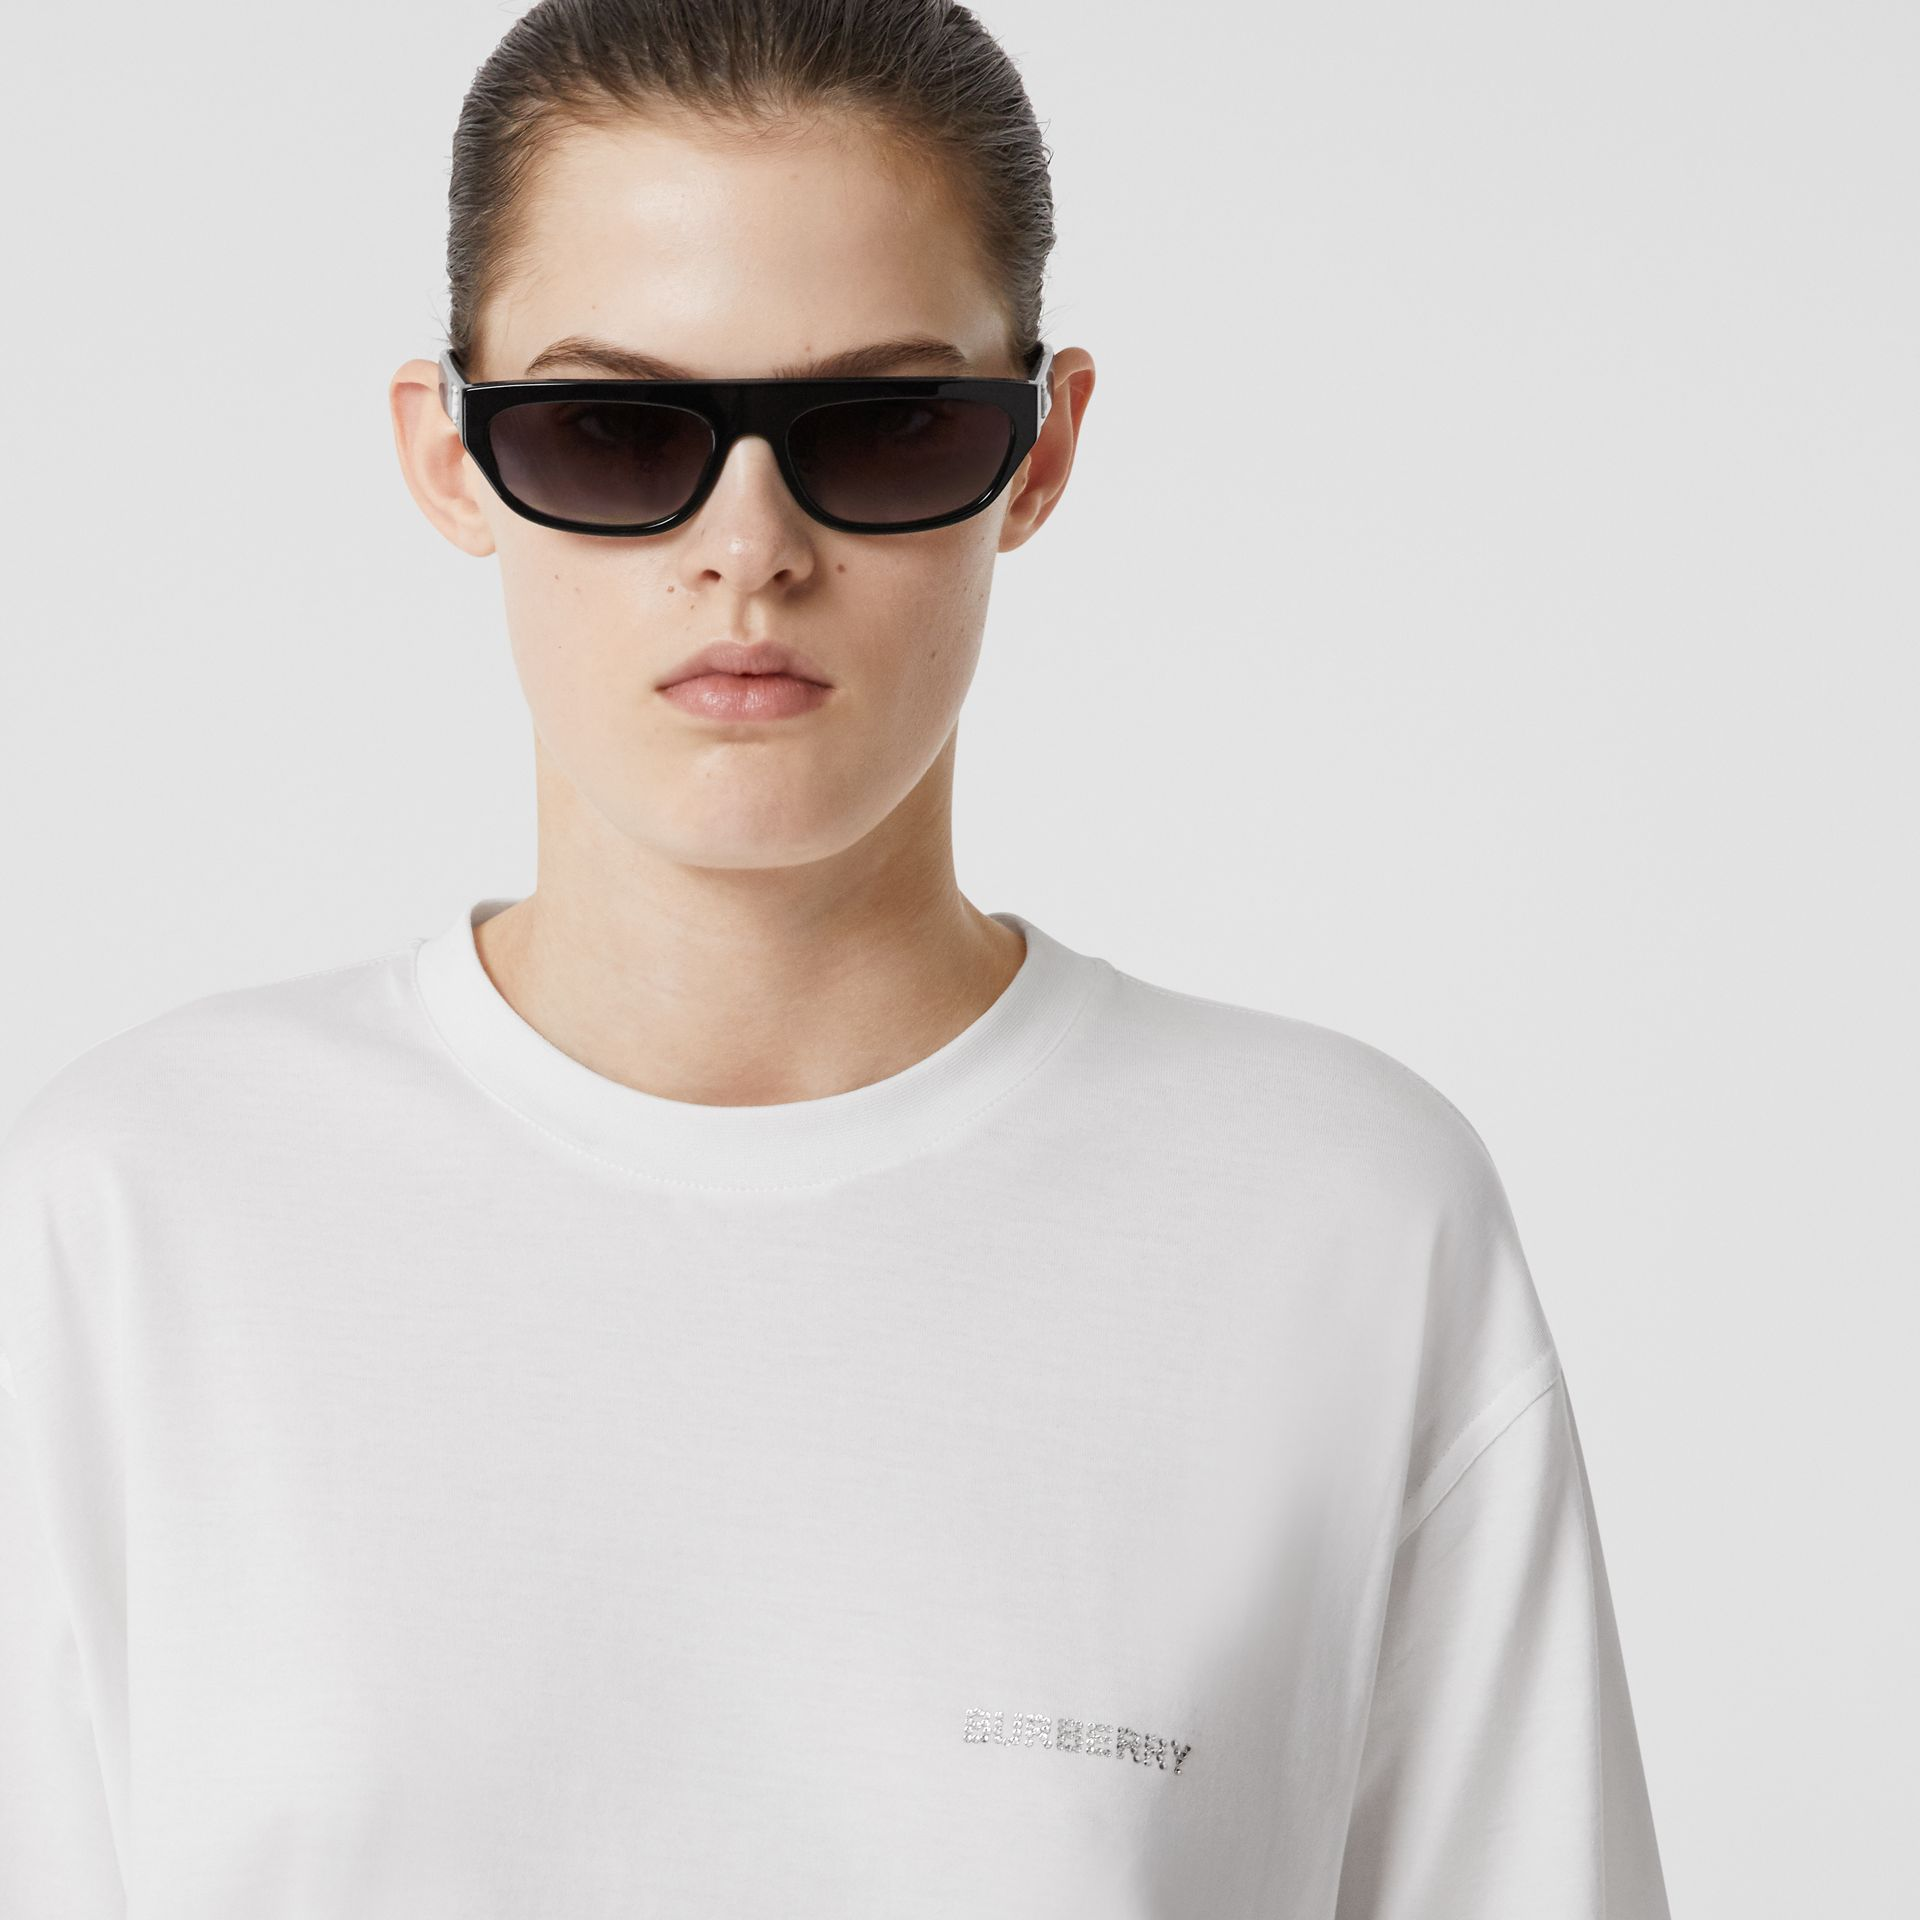 Crystal Monogram Motif Cotton Oversized T-shirt in White - Women | Burberry United Kingdom - gallery image 1